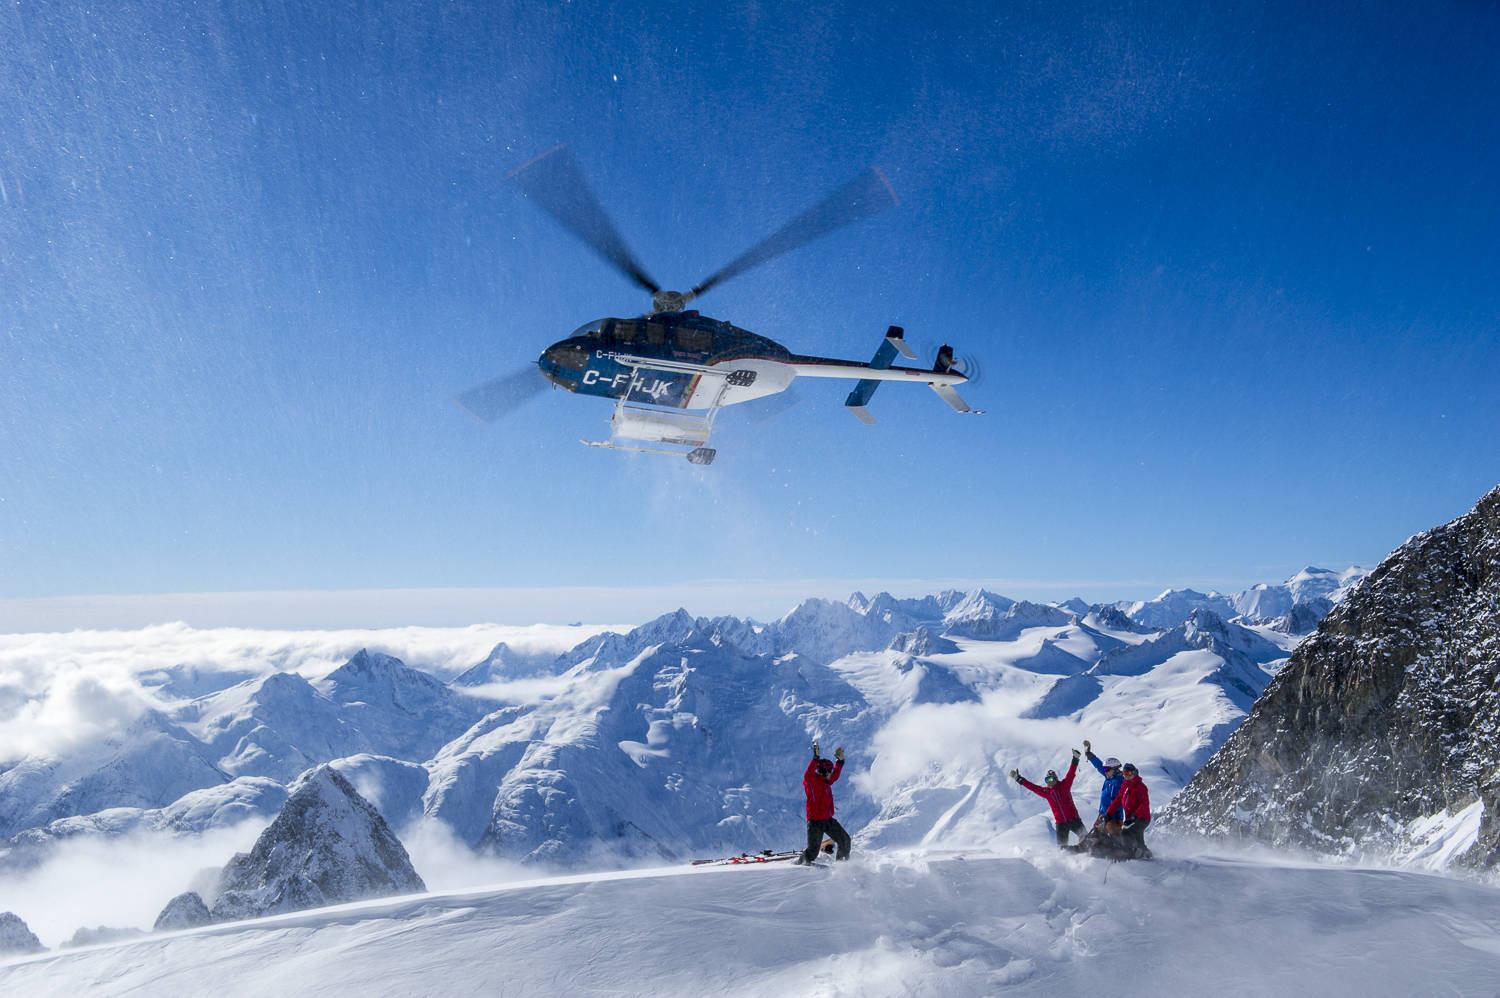 The World Ski Awards' title of World's Best Heli-Ski Operator went to Bella Coola Heli Sports – the fourth annual honour for the company. Photo courtesy of Bella Coola Heli Sports.